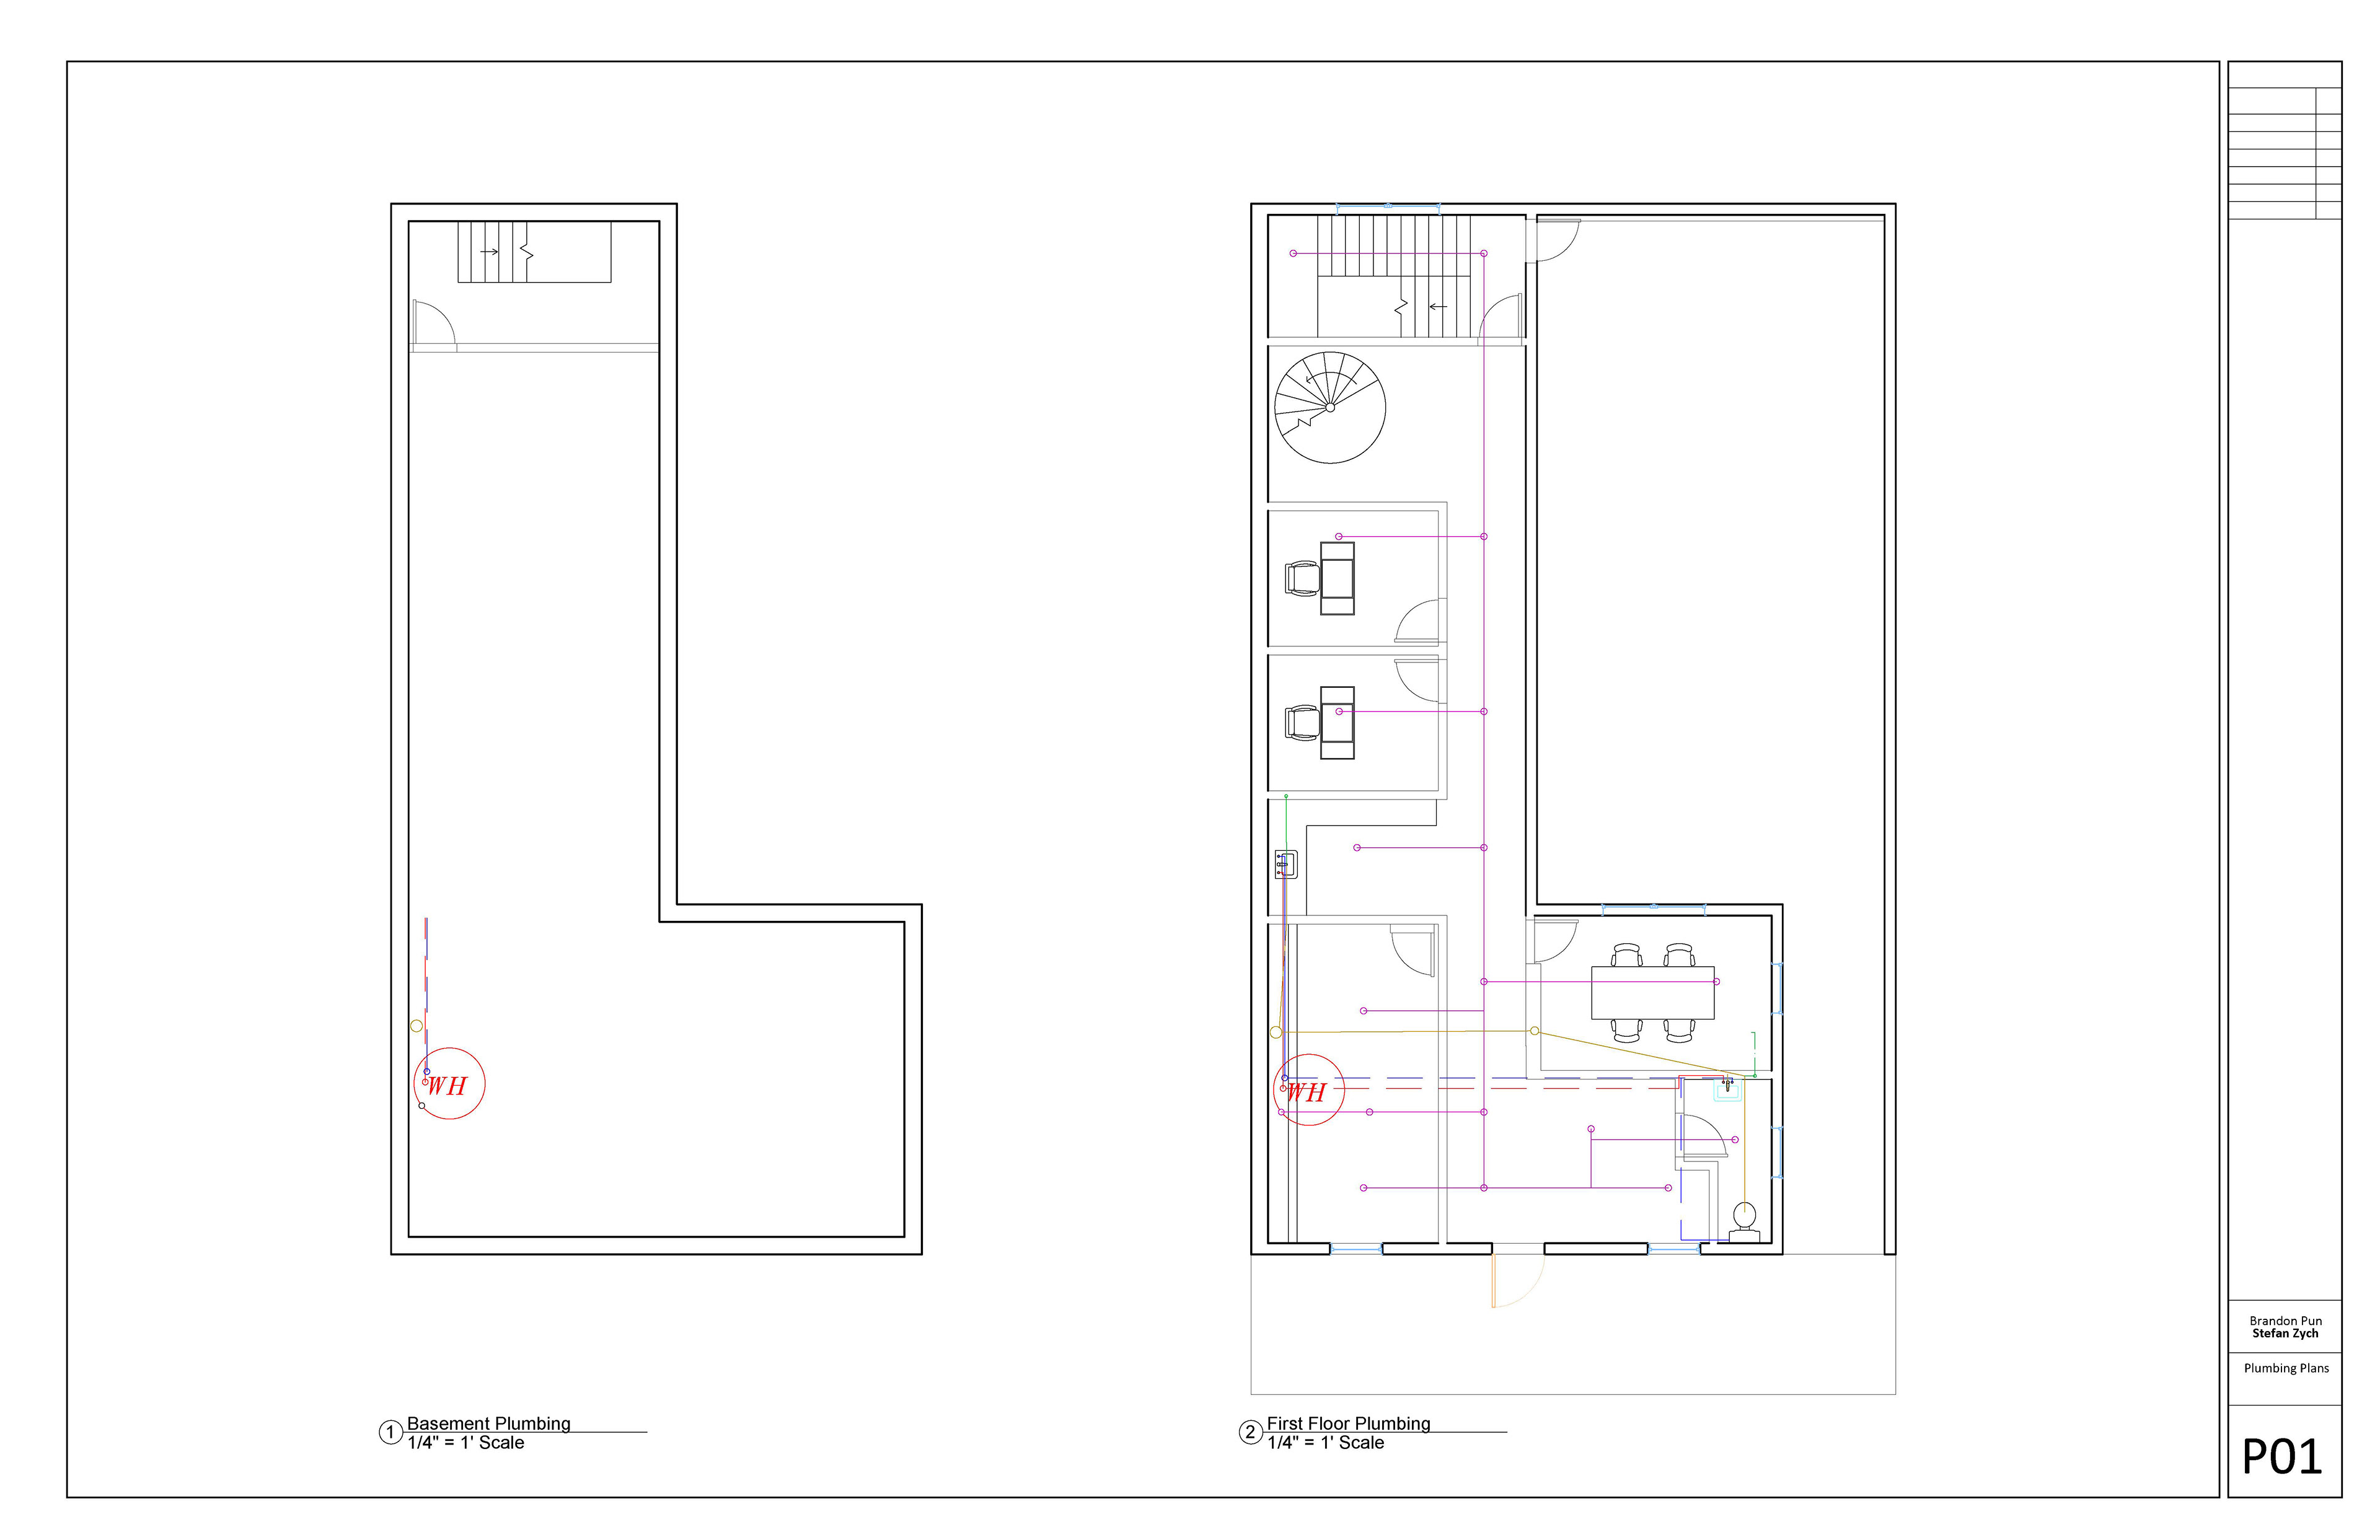 Brandon Pun Mechanical Systems Case Study Hvac Plumbing Drawing Lighting And Ventilation Attached Is A Series Of Drawings Illustrating Our Knowledge Practice In These Internal